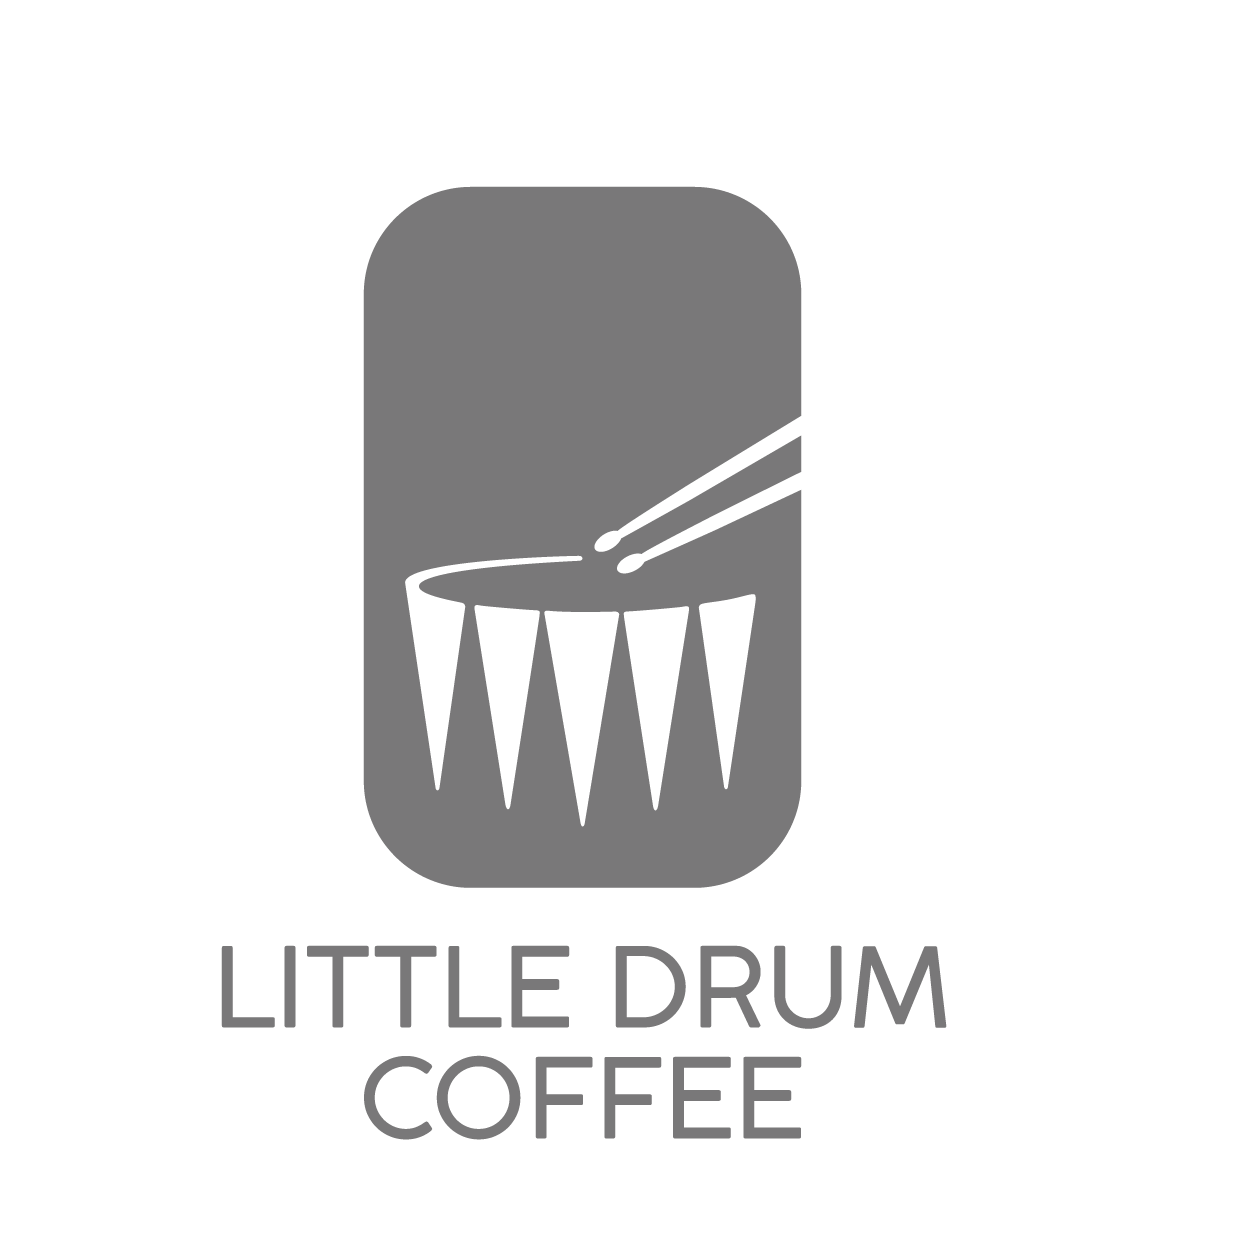 Little Drum Coffee